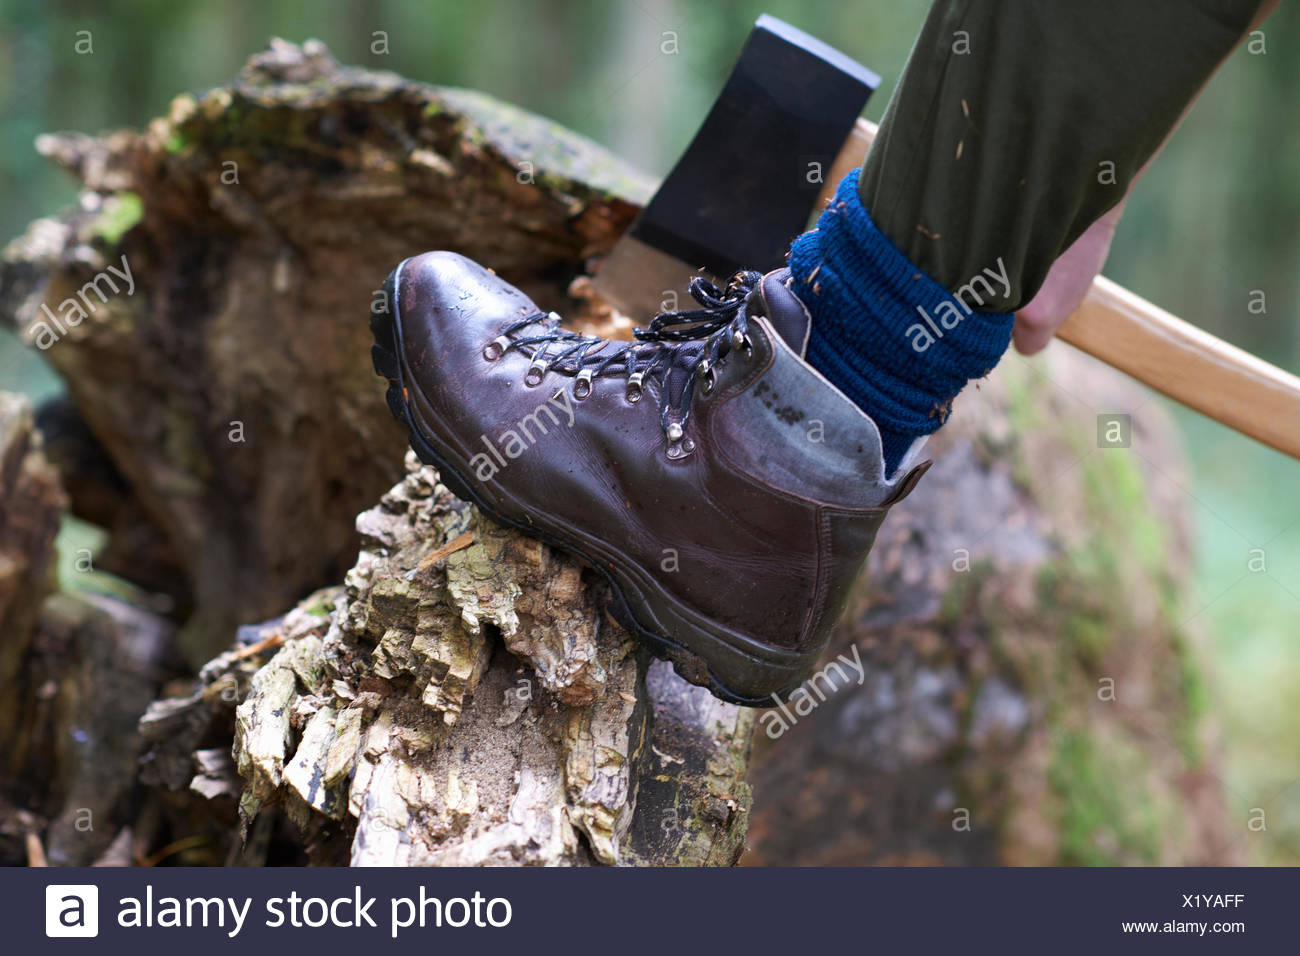 Cropped view of lumberjack's foot raised on tree stump Stock Photo